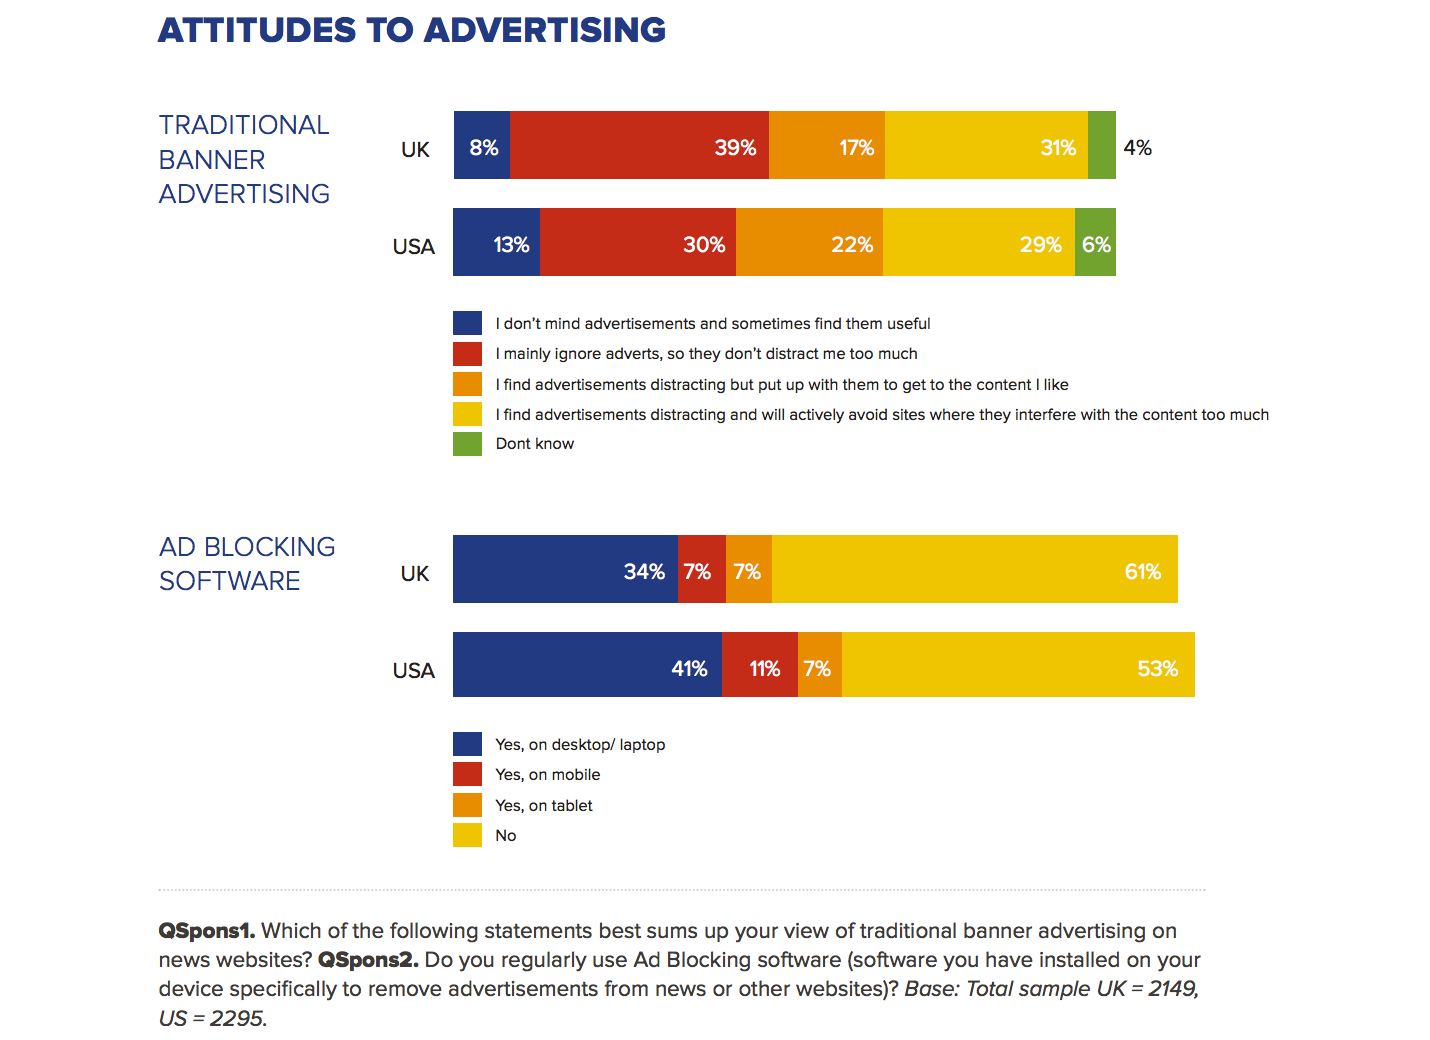 Reuters Institute. Digital News Report 2015. Attitudes to advertising (ad blocking).